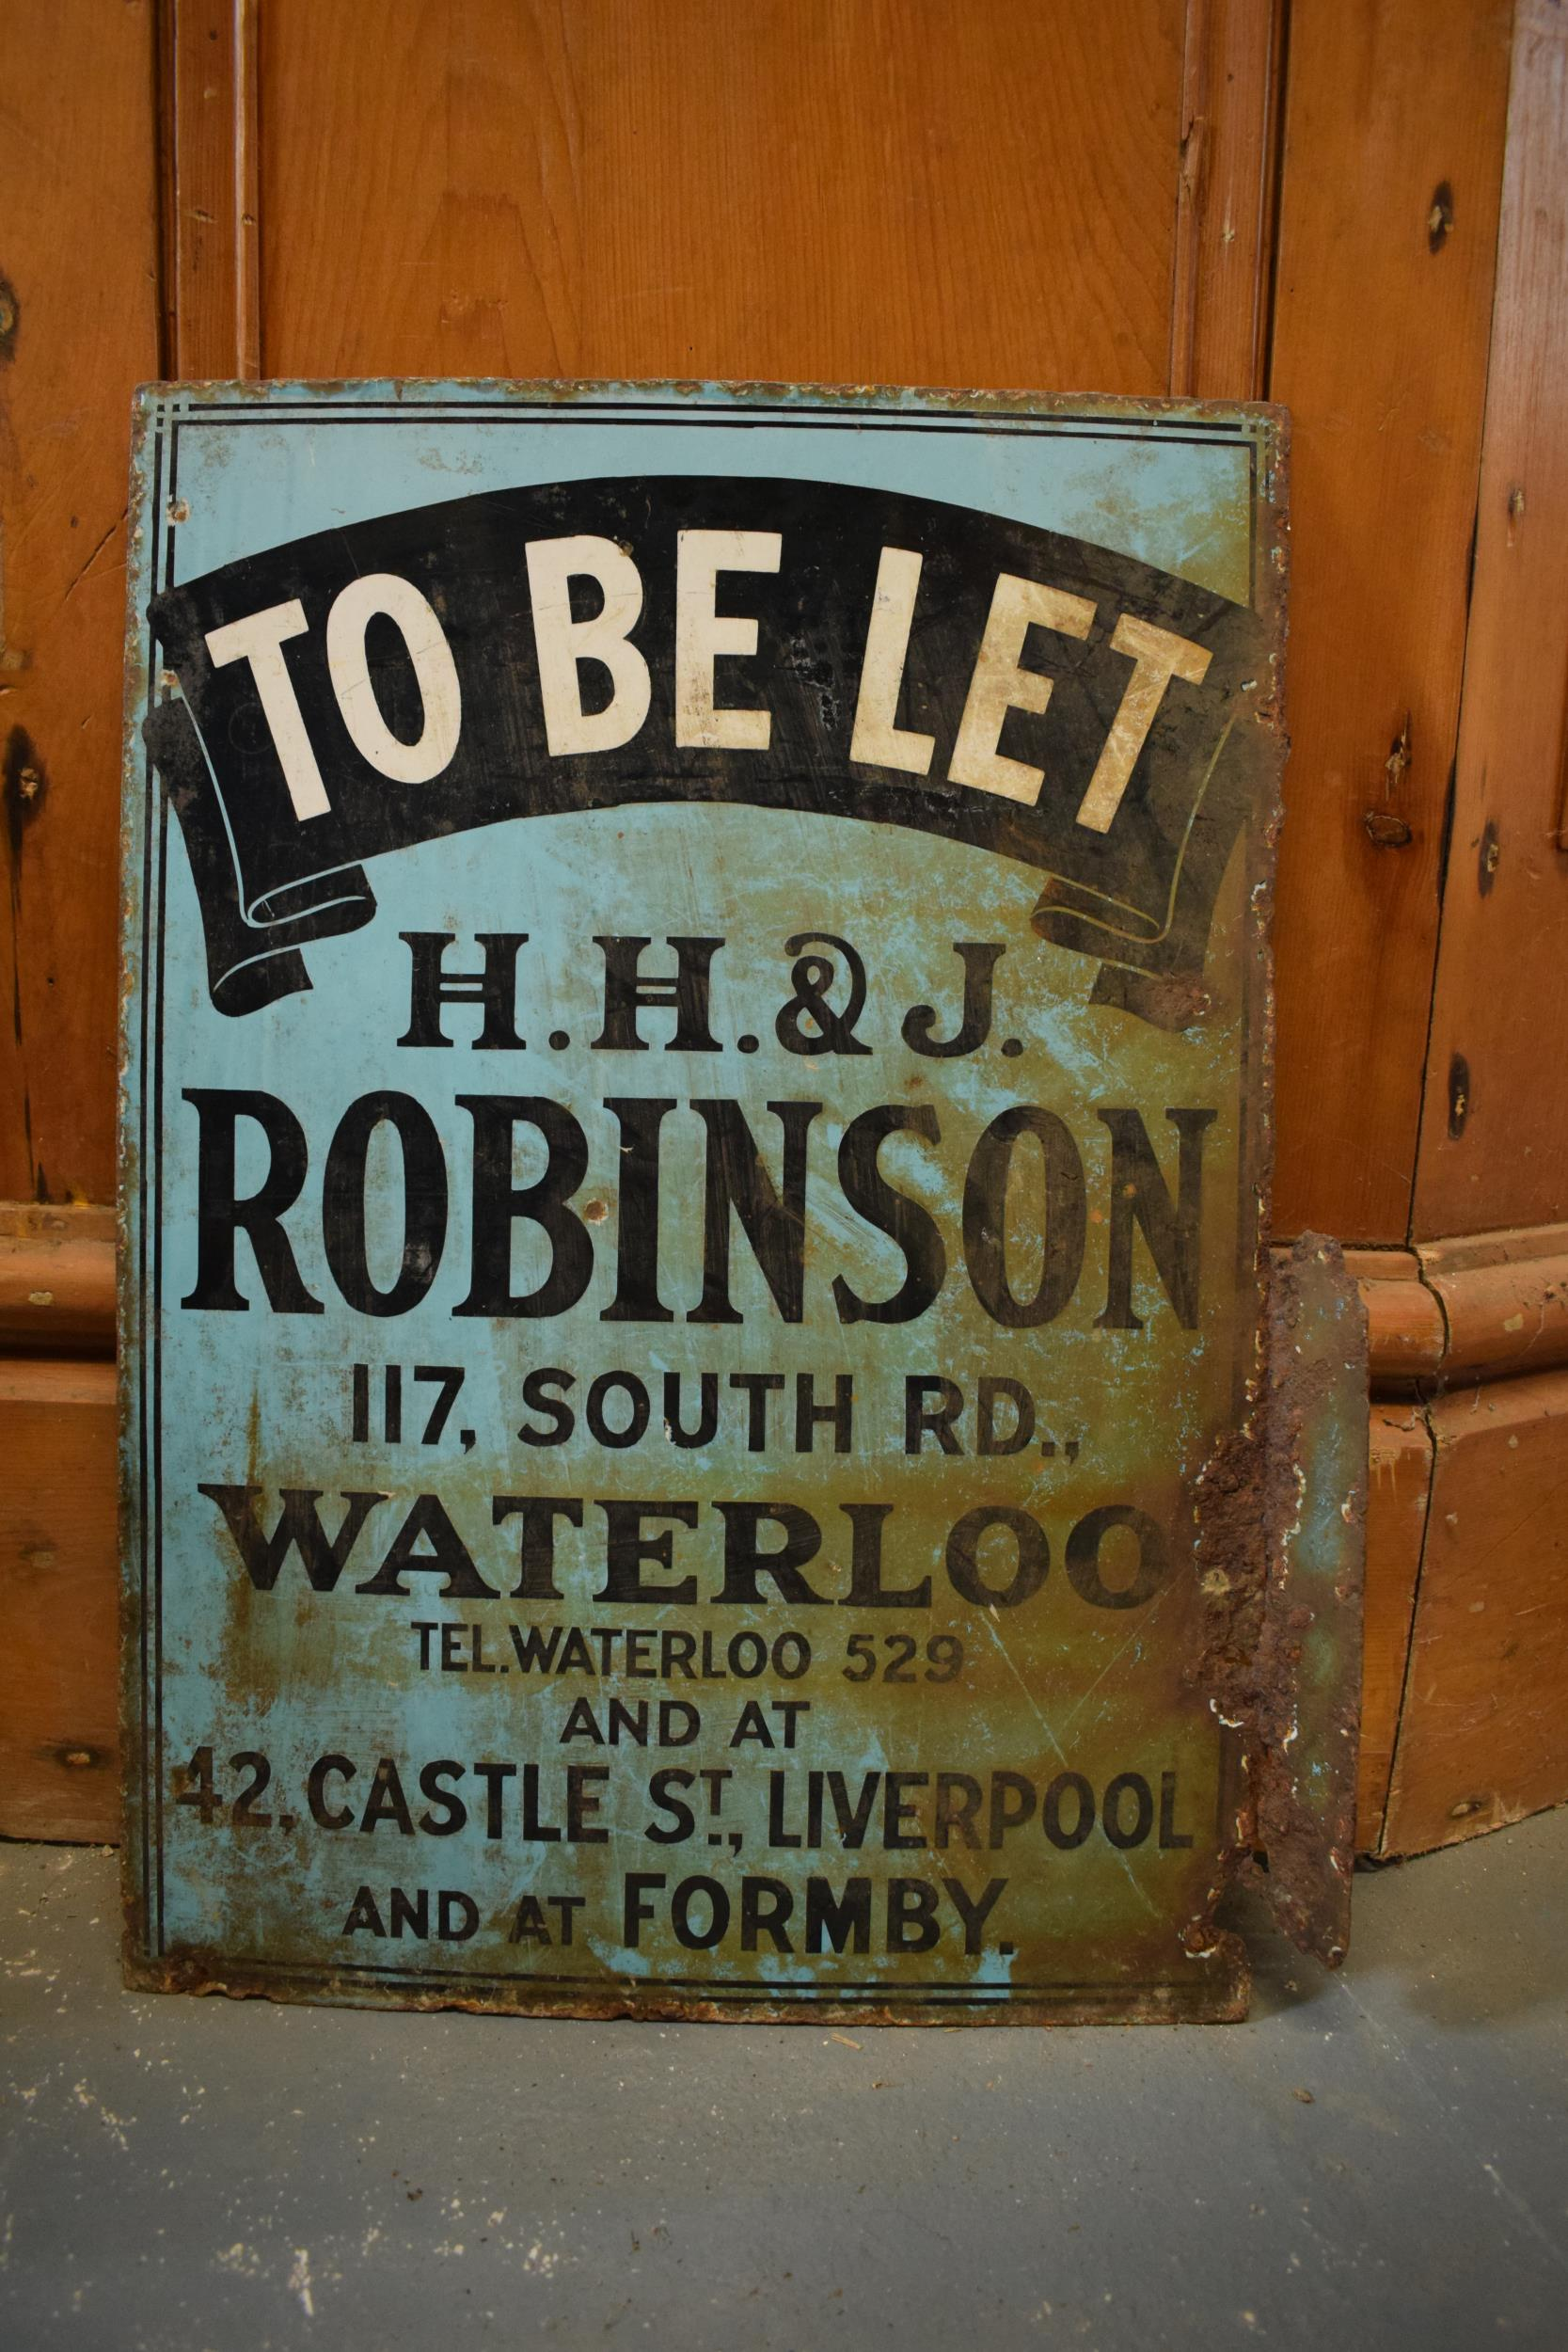 An original vintage double-sided enamel advertising sign for an H H and J Robinson estate agents. '